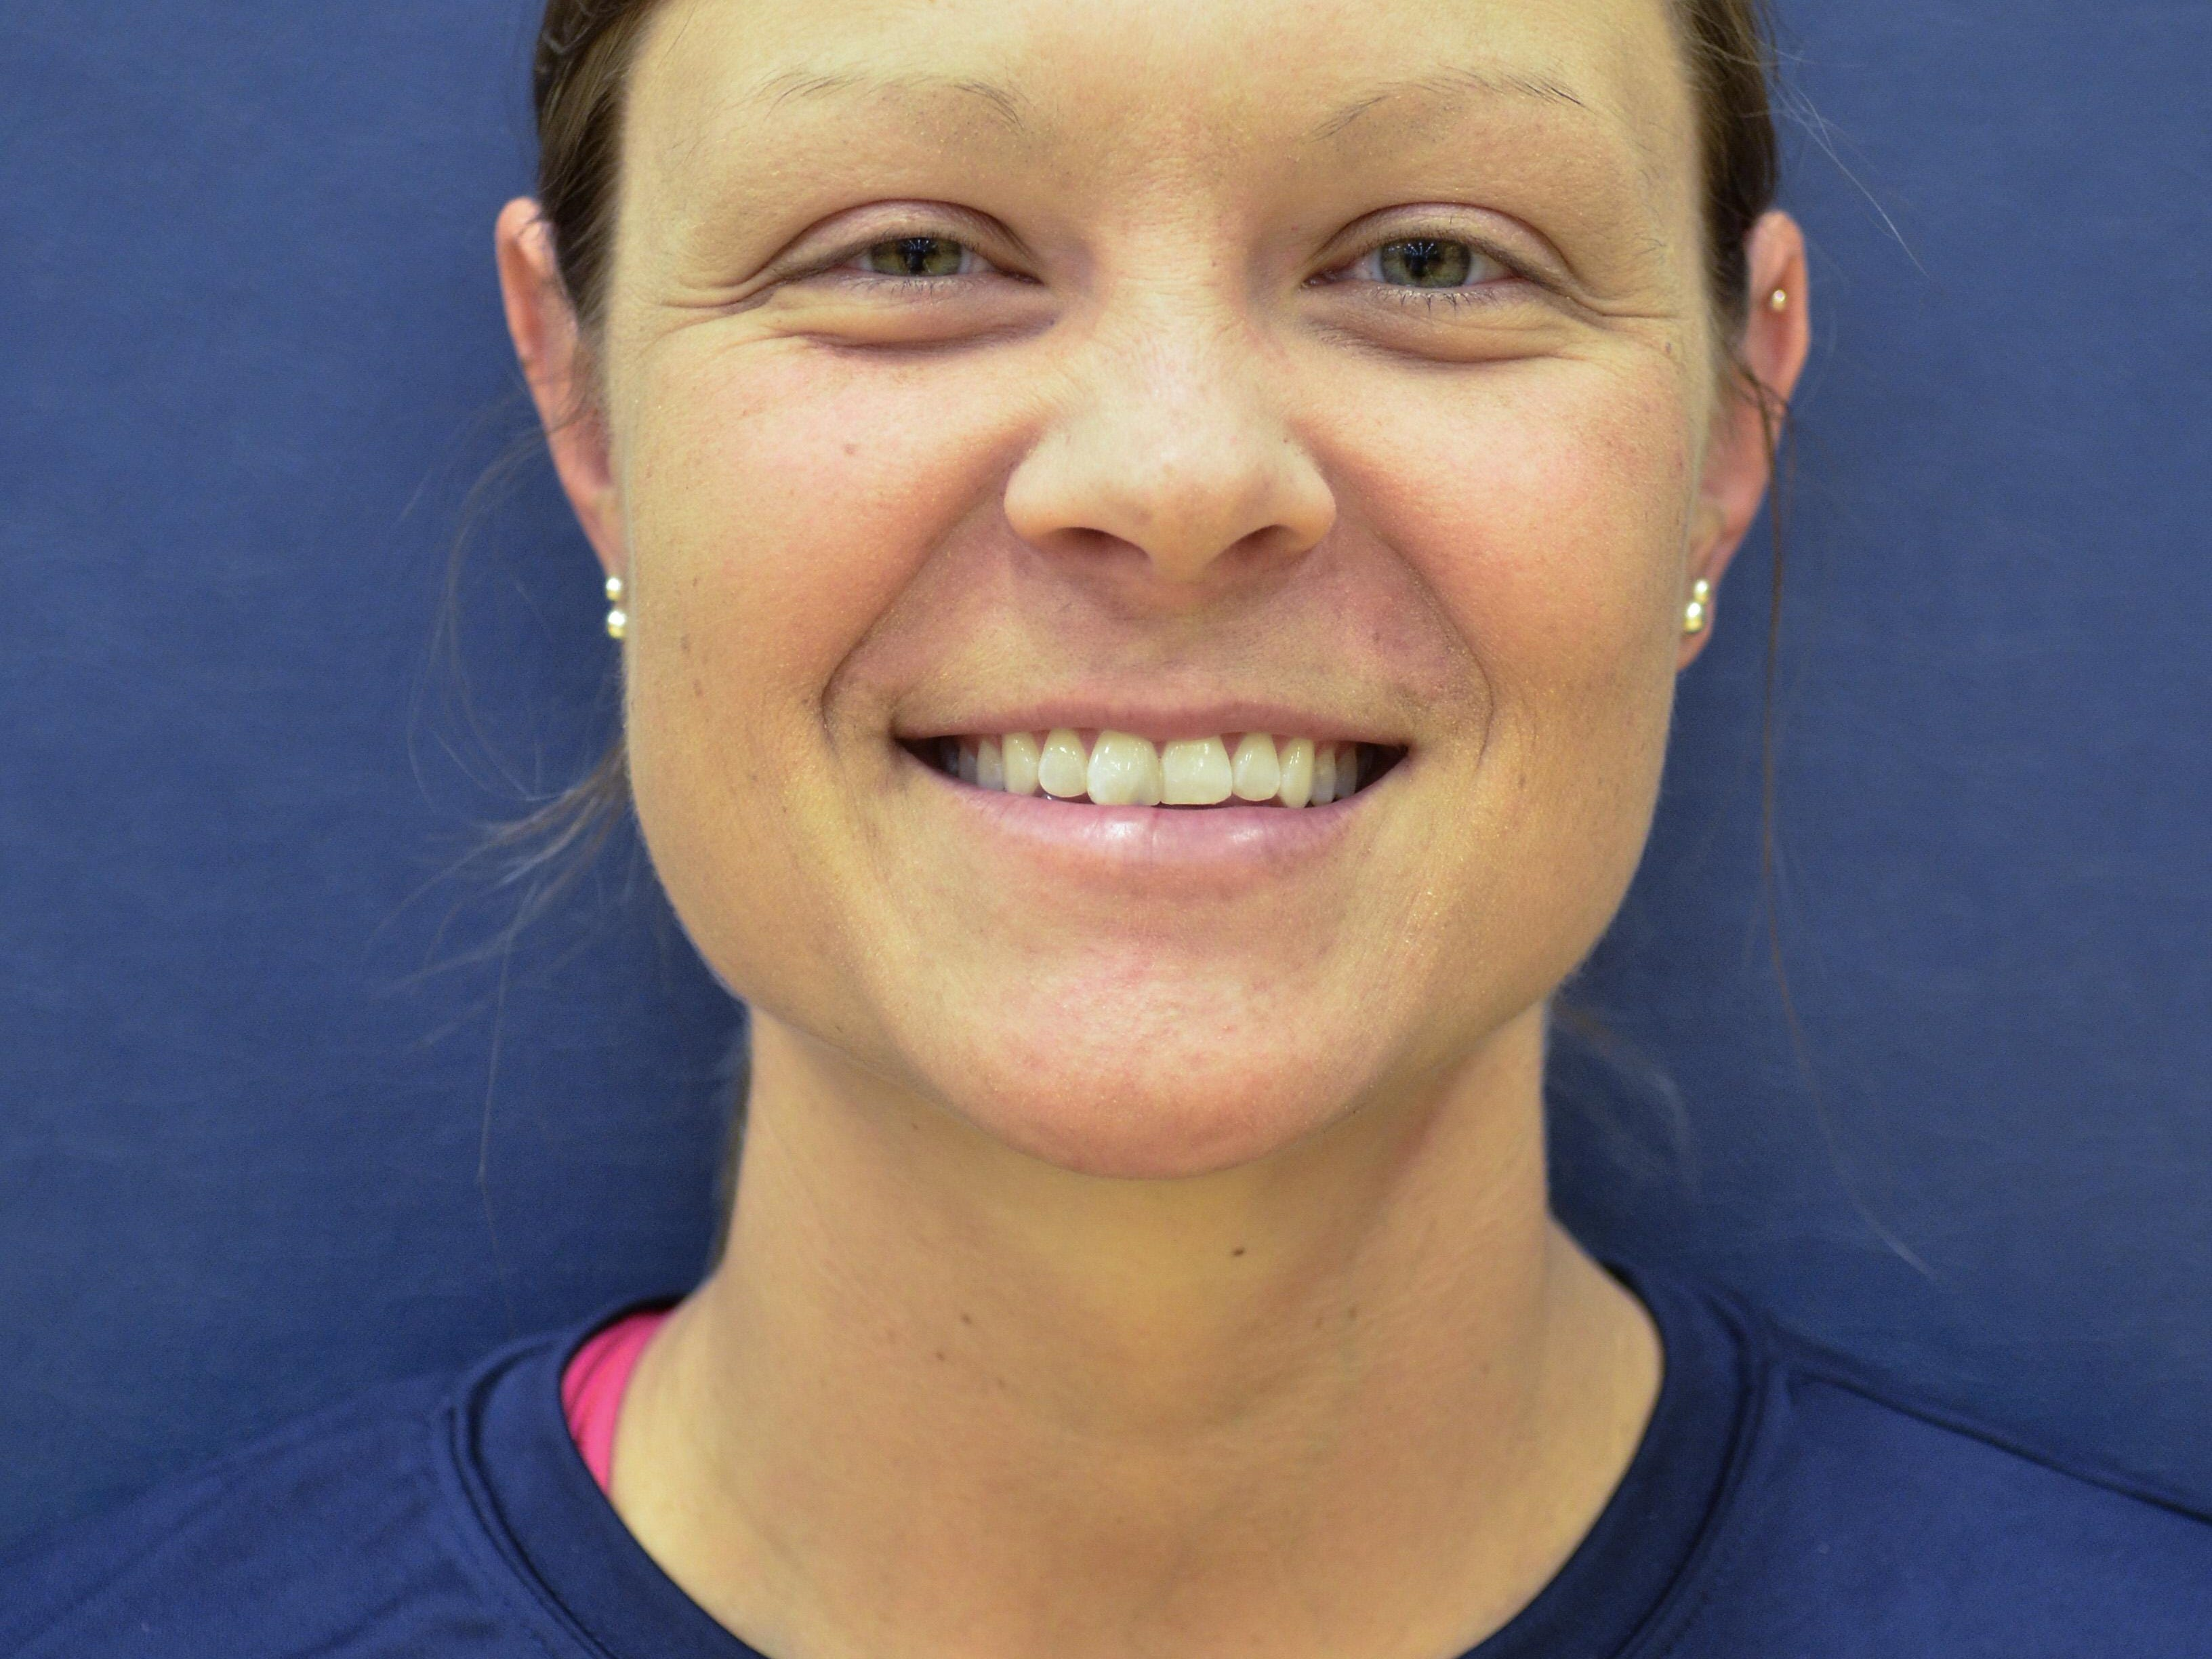 Coach Kristen Michaelis Tuesday night, Aug. 18 during their volleyball practice at St. Clair County Community College.